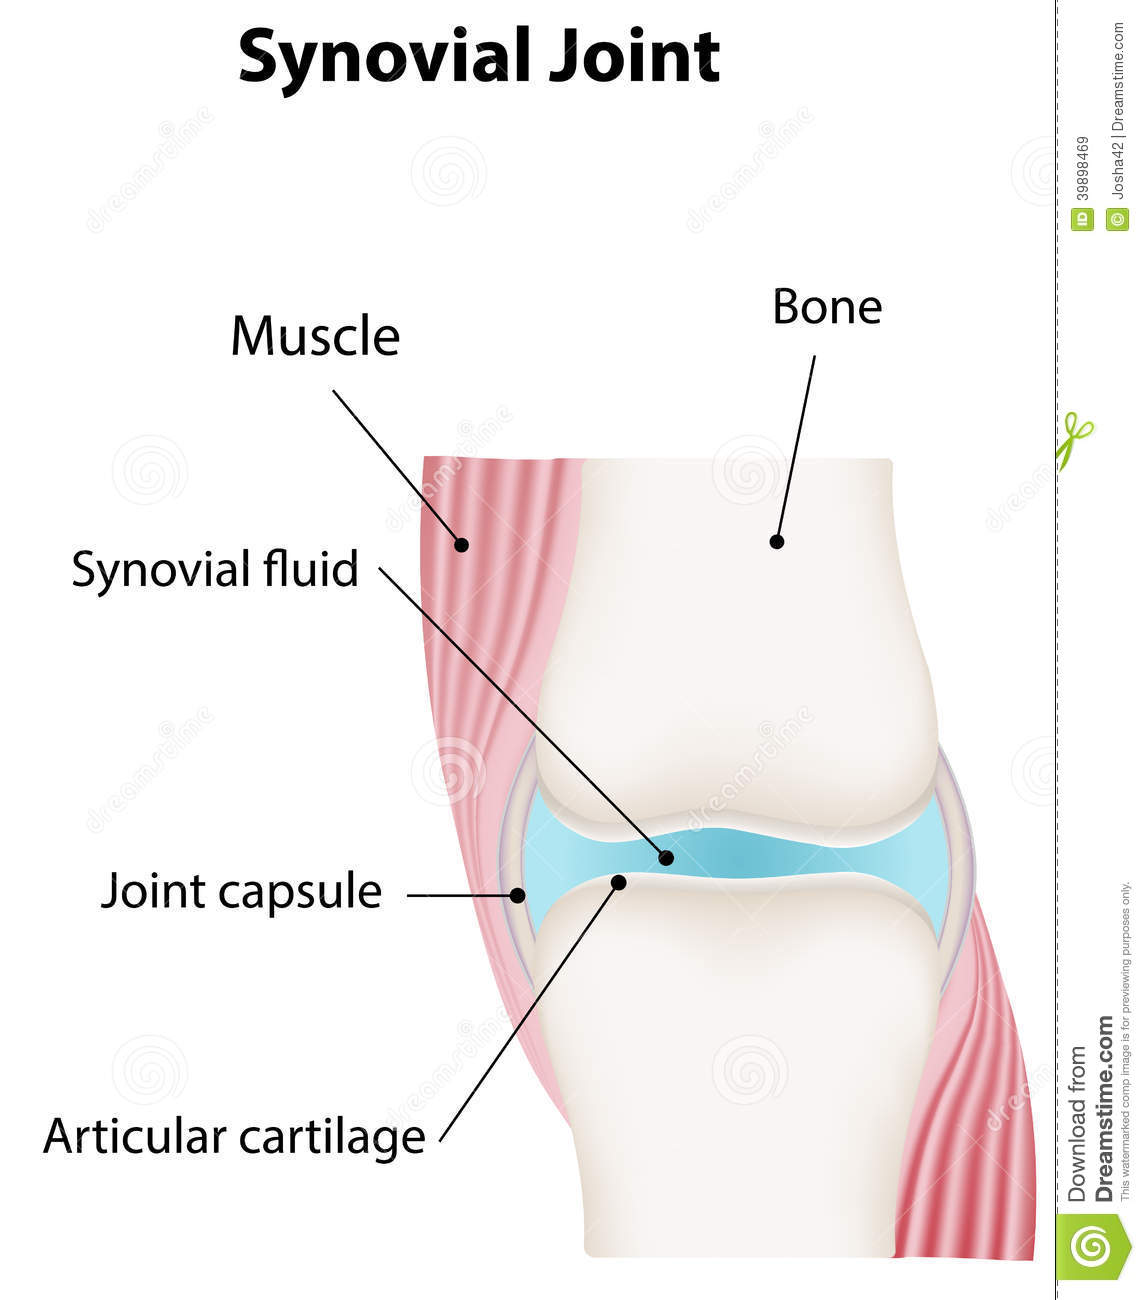 Synovial Joint Diagram Labeled Stock Vector - Image: 39898469